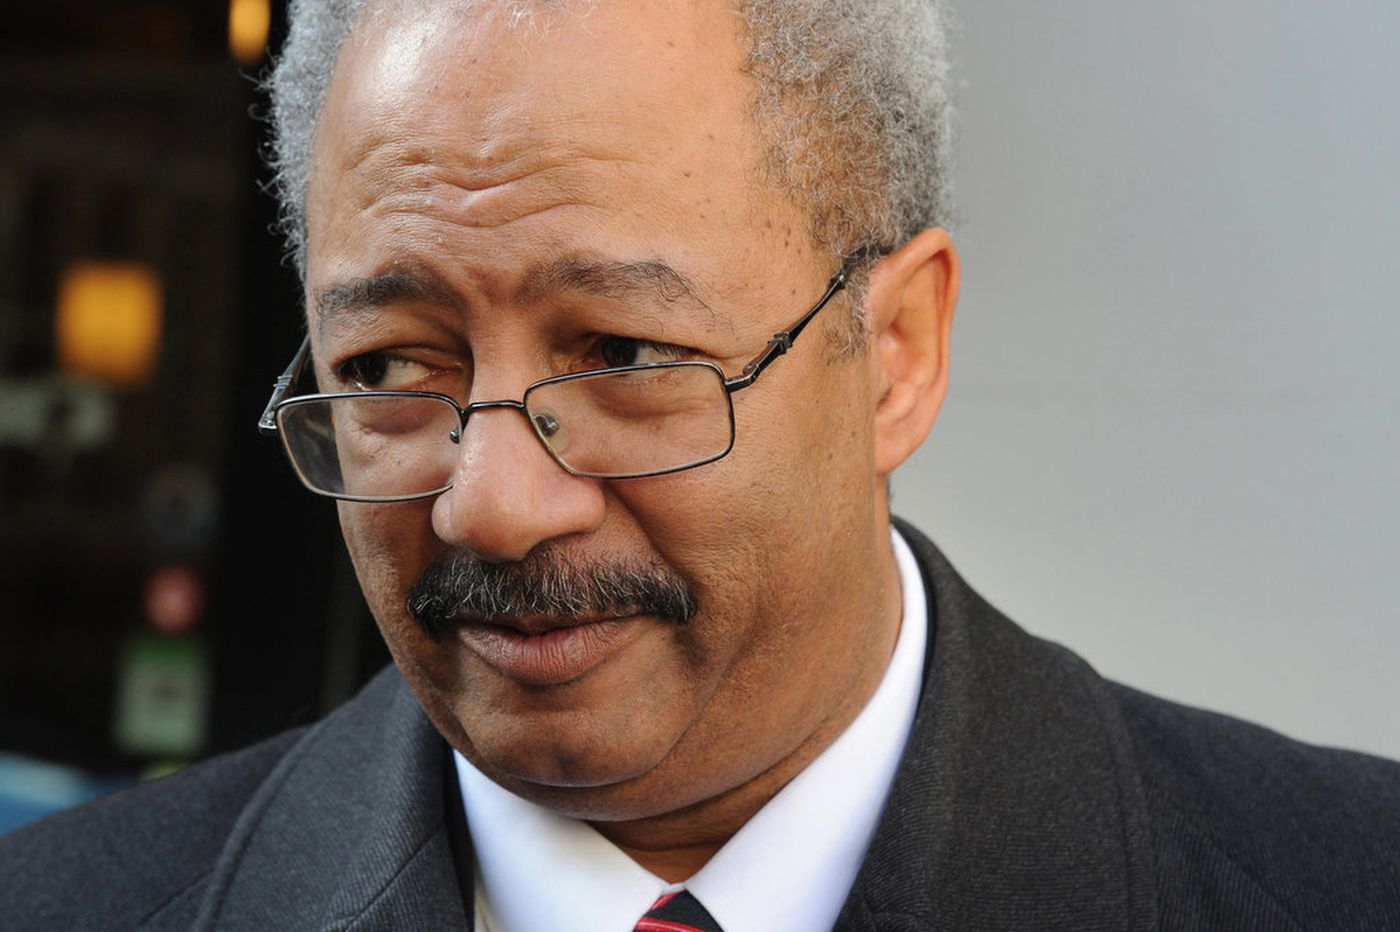 Feds want seven years' worth of Fattah's private e-mails